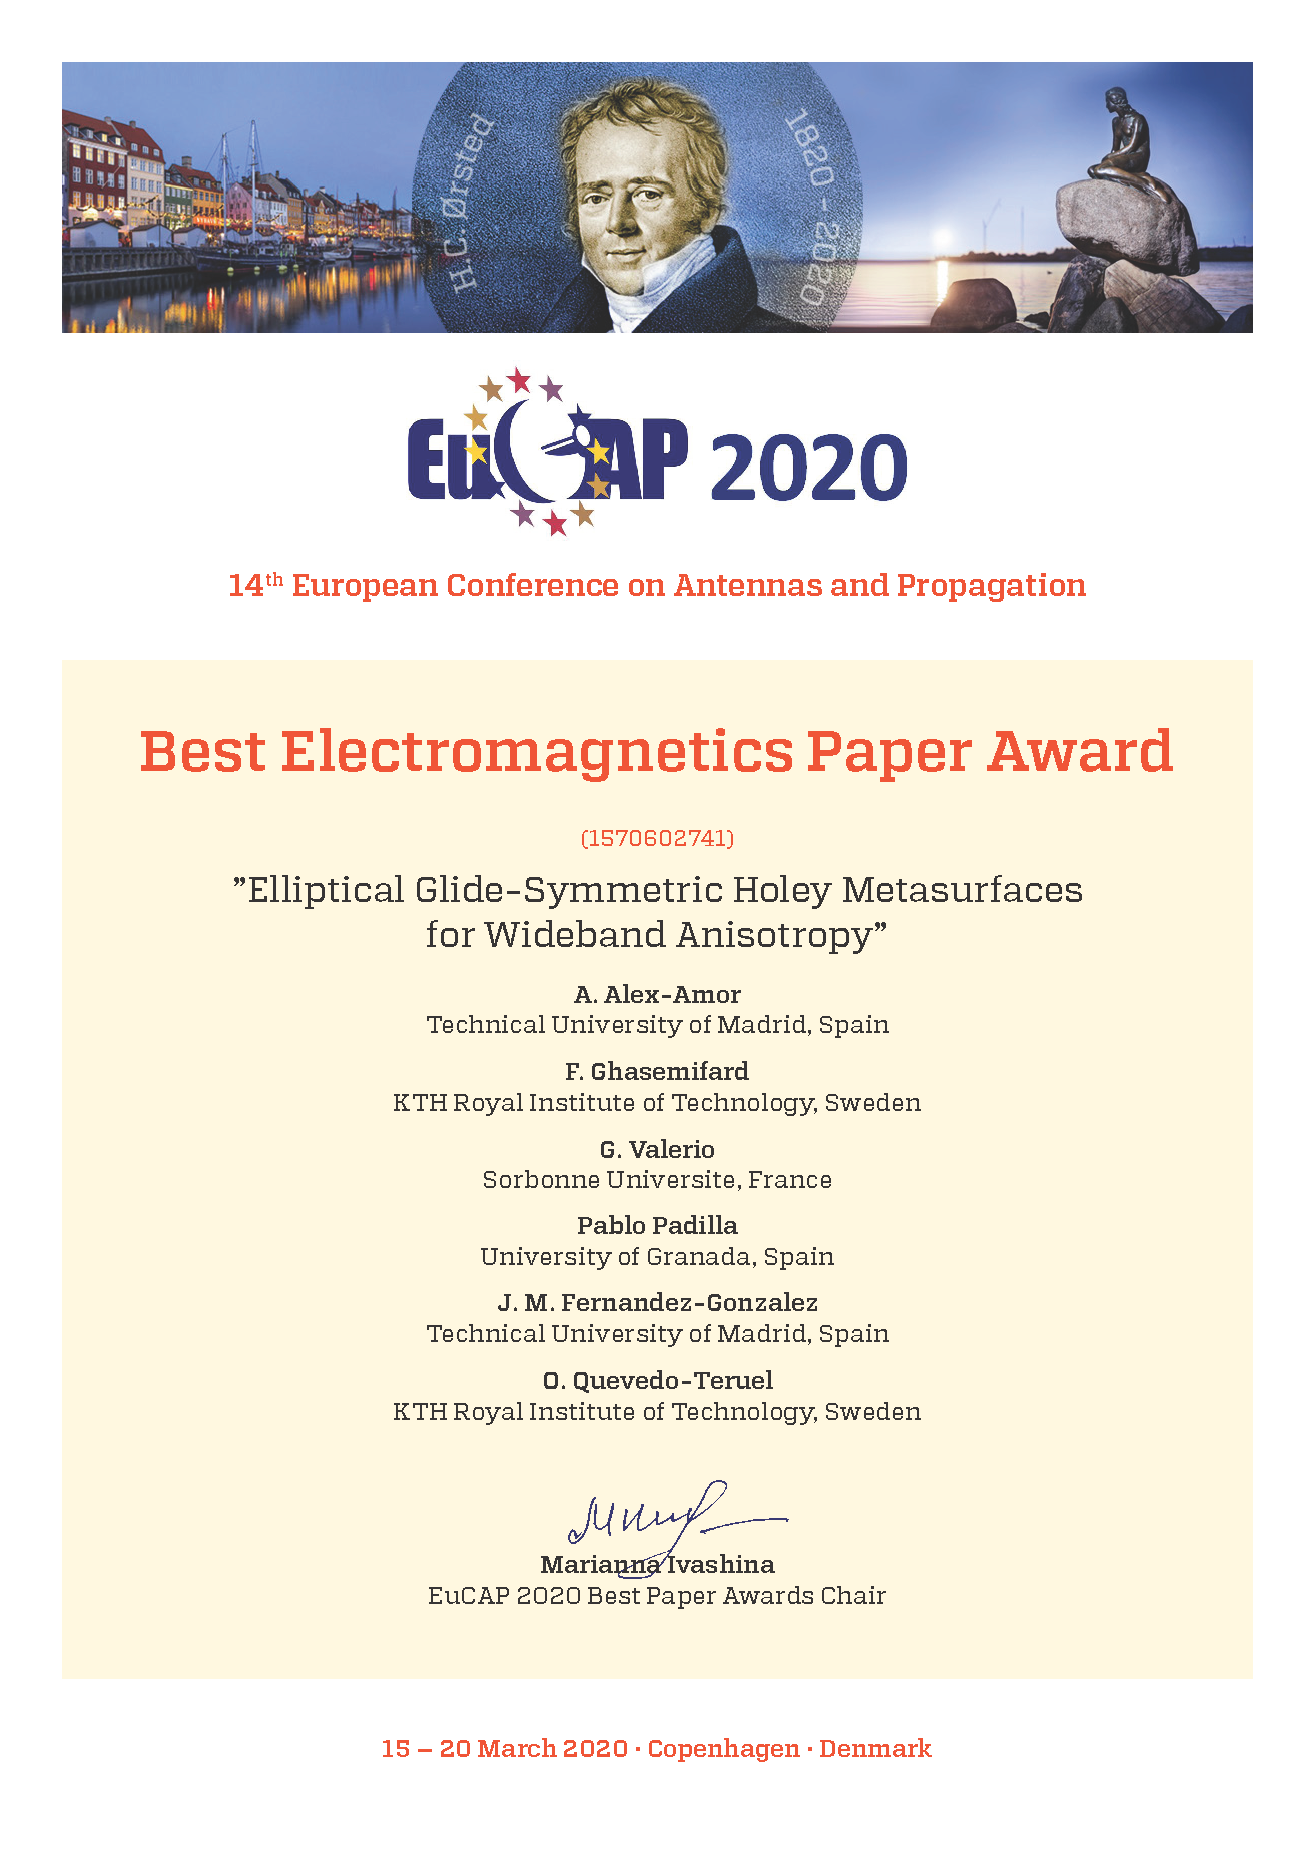 Best paper award Electromagnetics